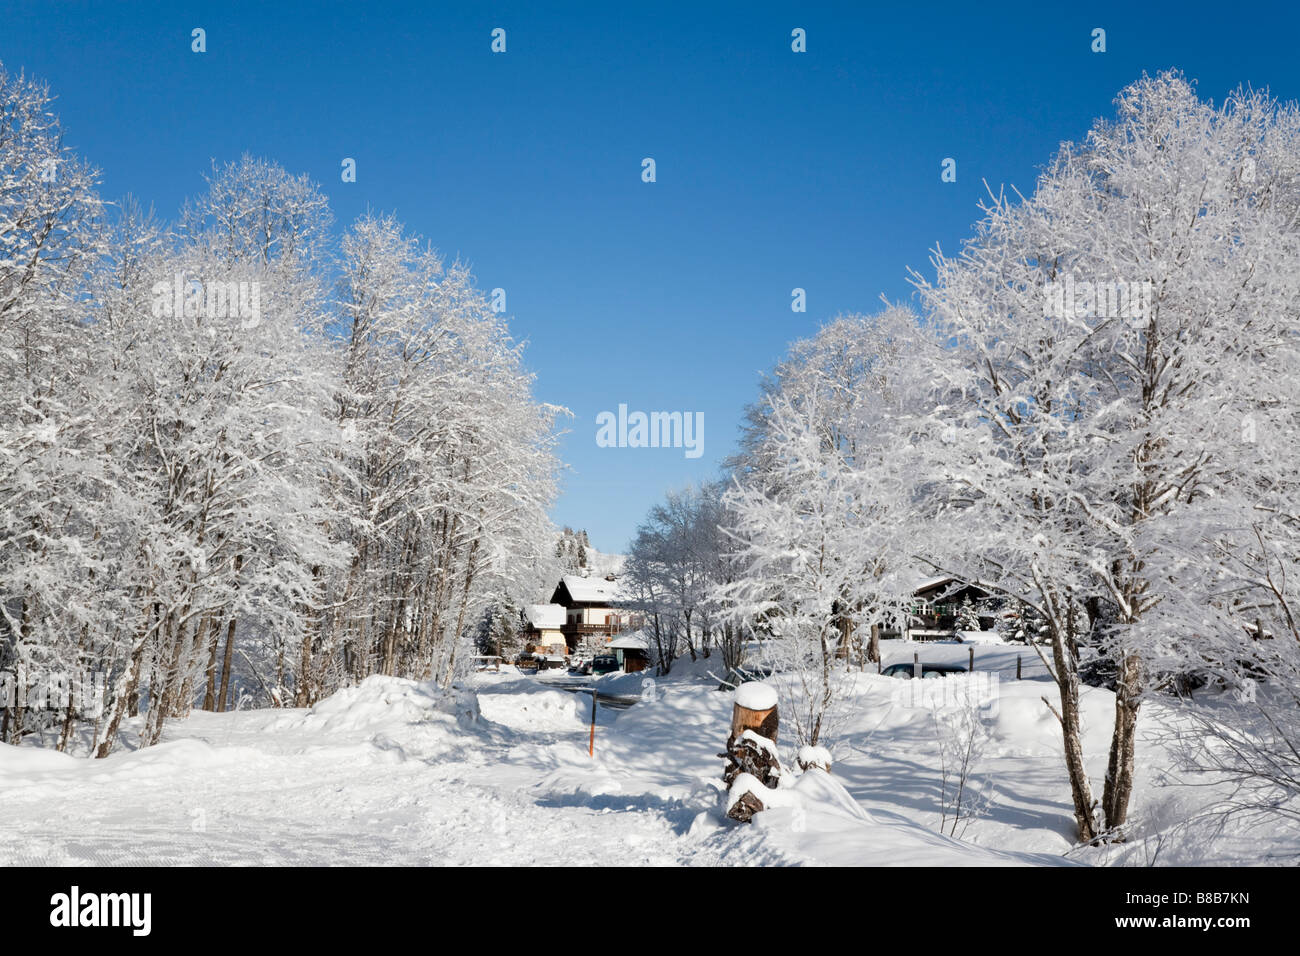 Bucheben Rauriser Sonnen Valley Austria Europe January Winter snow scene with trees covered in white hoarfrost after - Stock Image